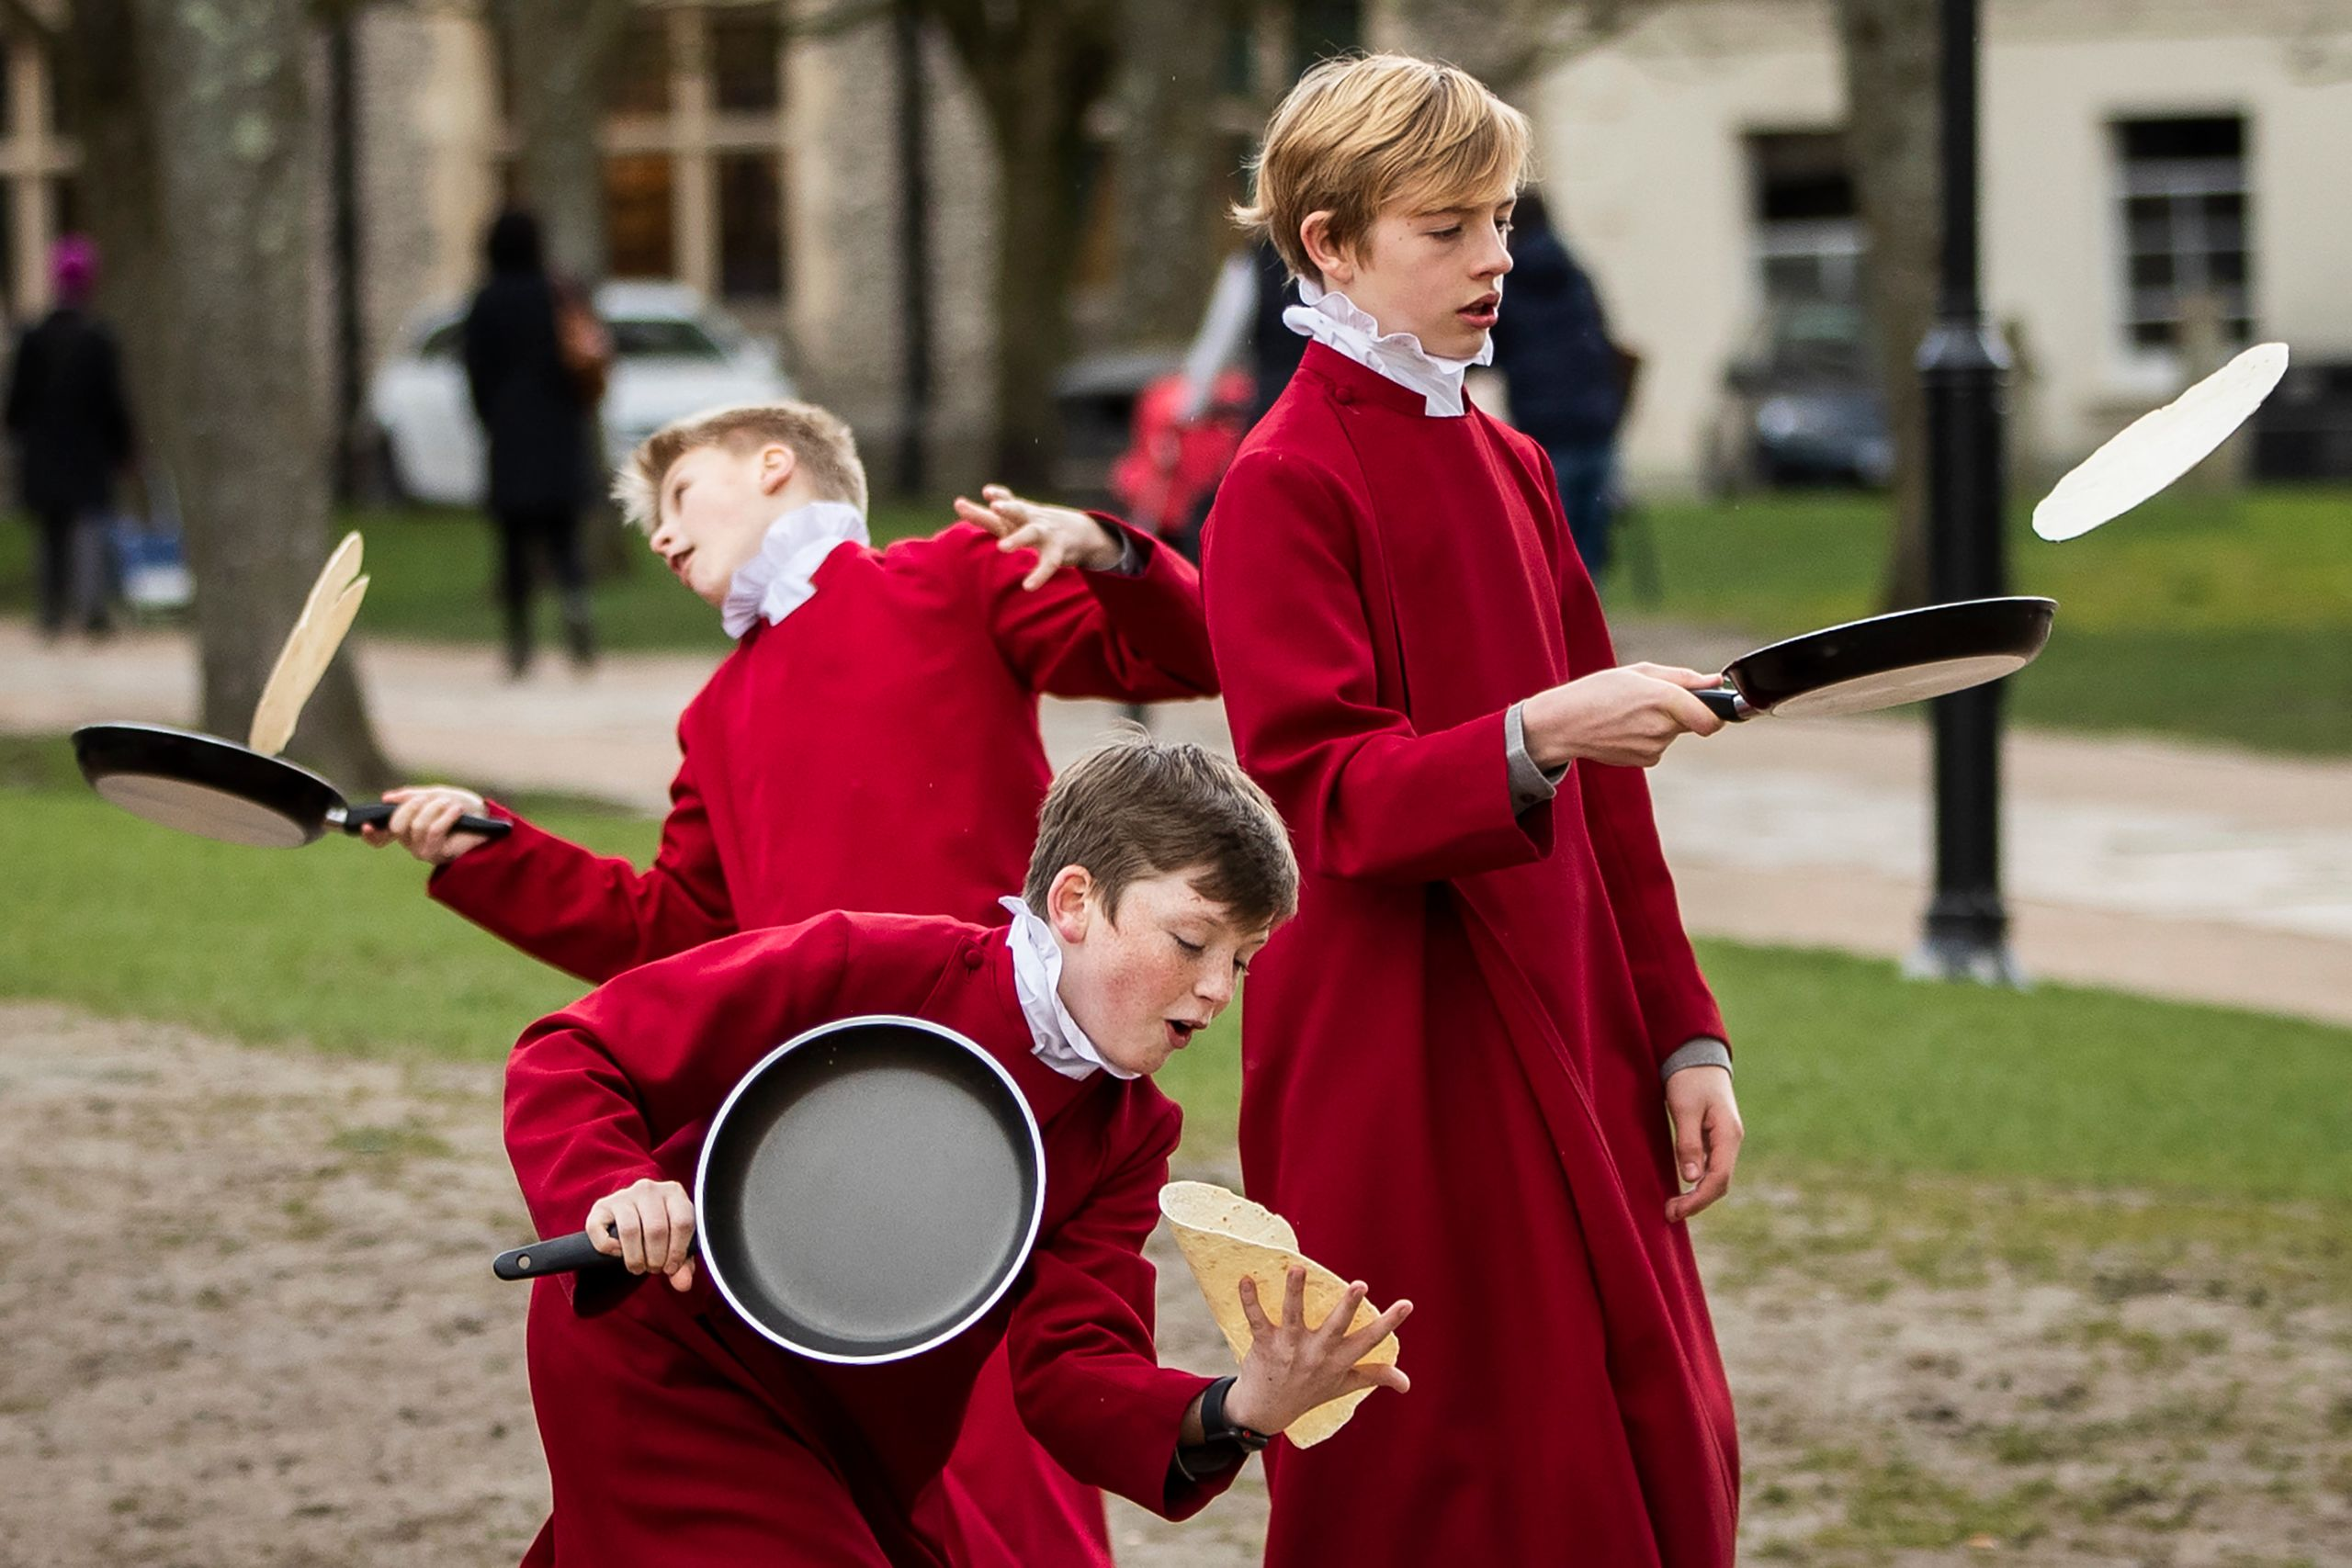 Choristers from Winchester Cathedral joke around in between being posed up for pictures by photographers on March 5, 2019, in